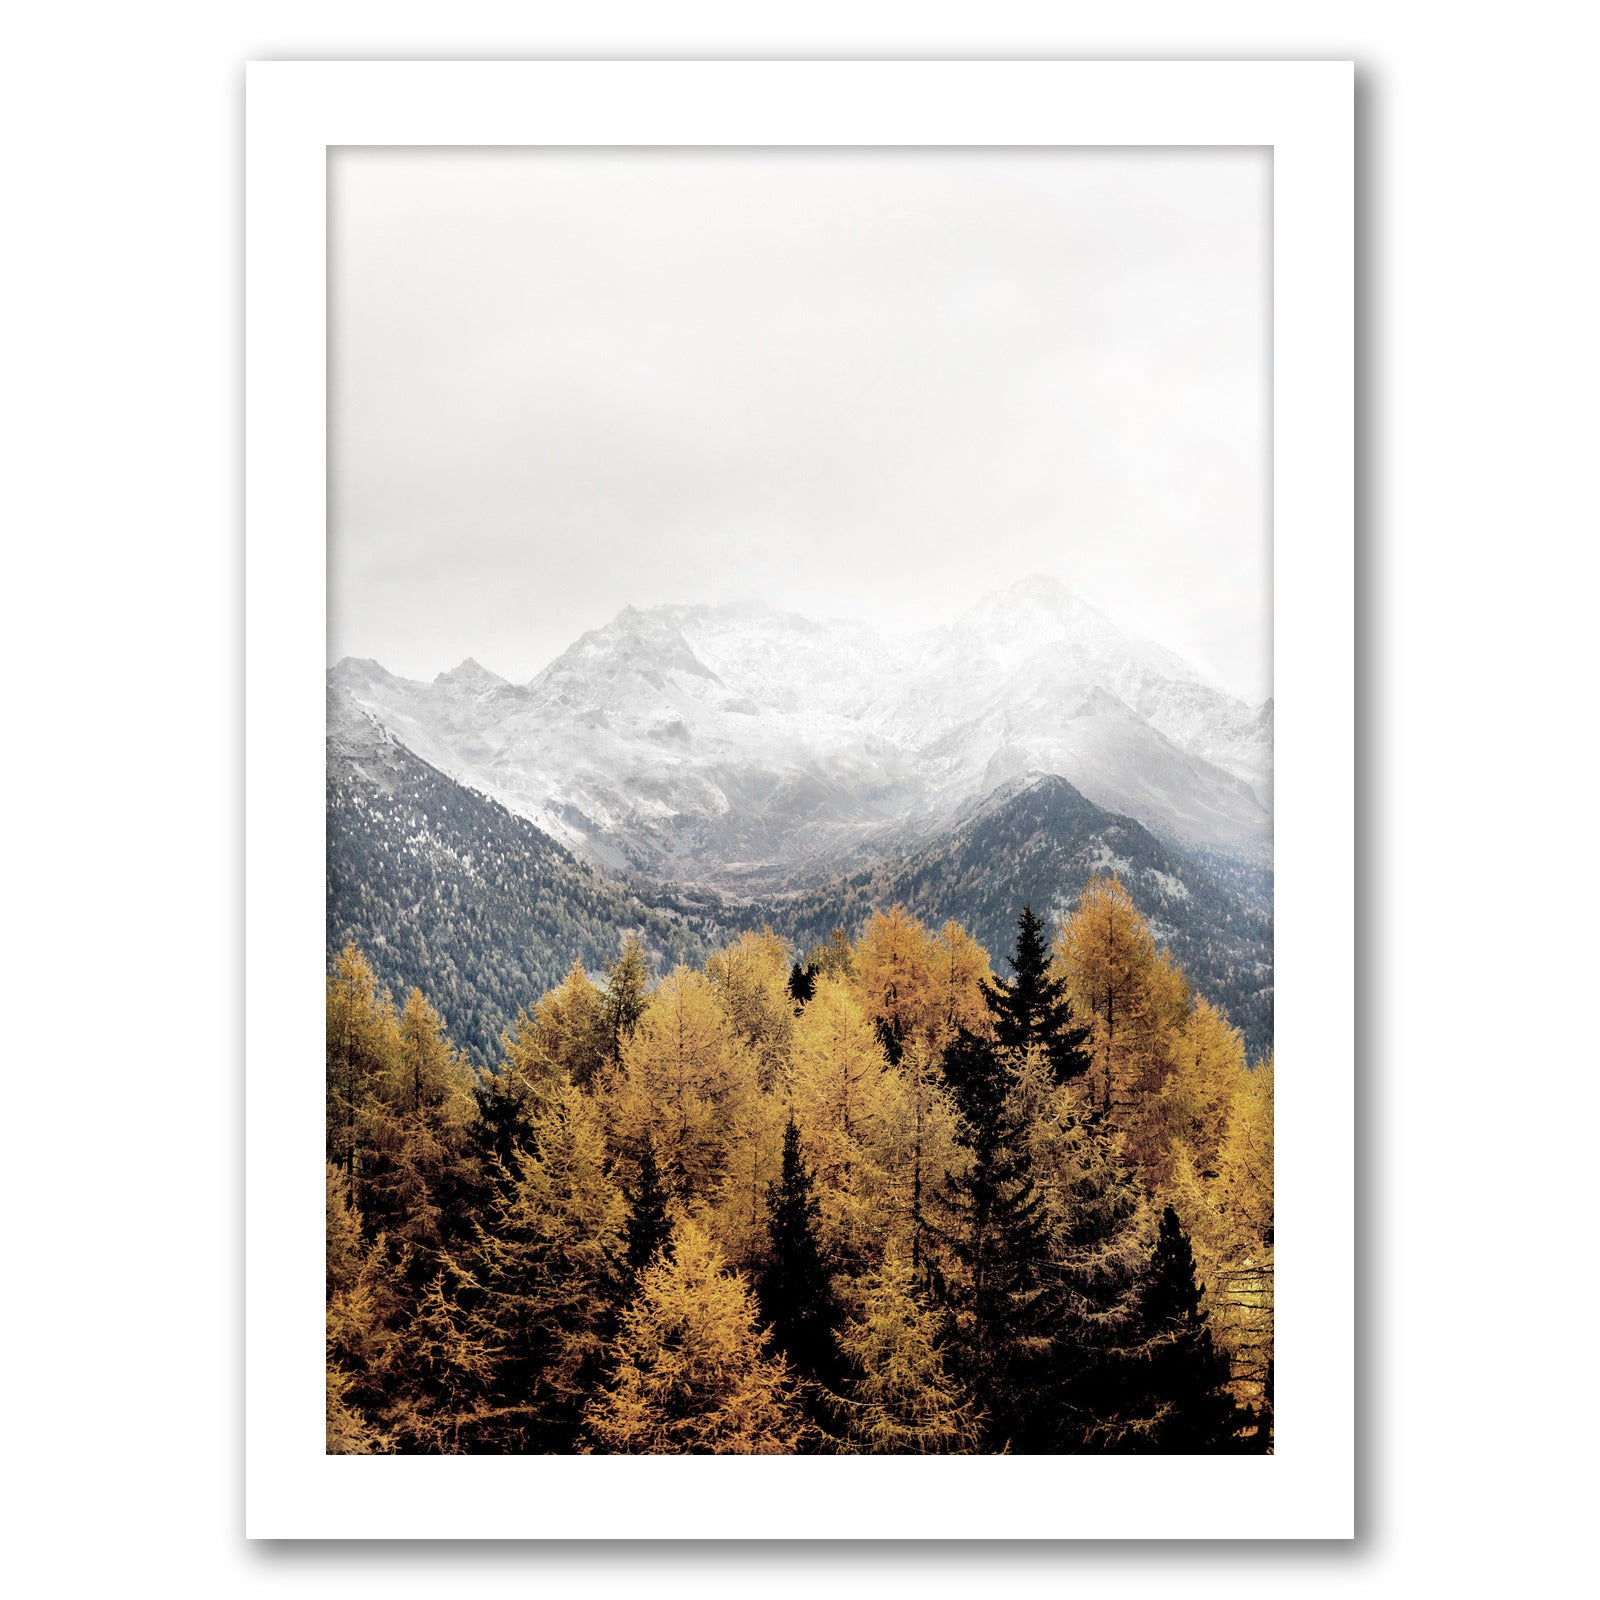 Snowy Mountain by Tanya Shumkina - White Framed Print - Wall Art - Americanflat